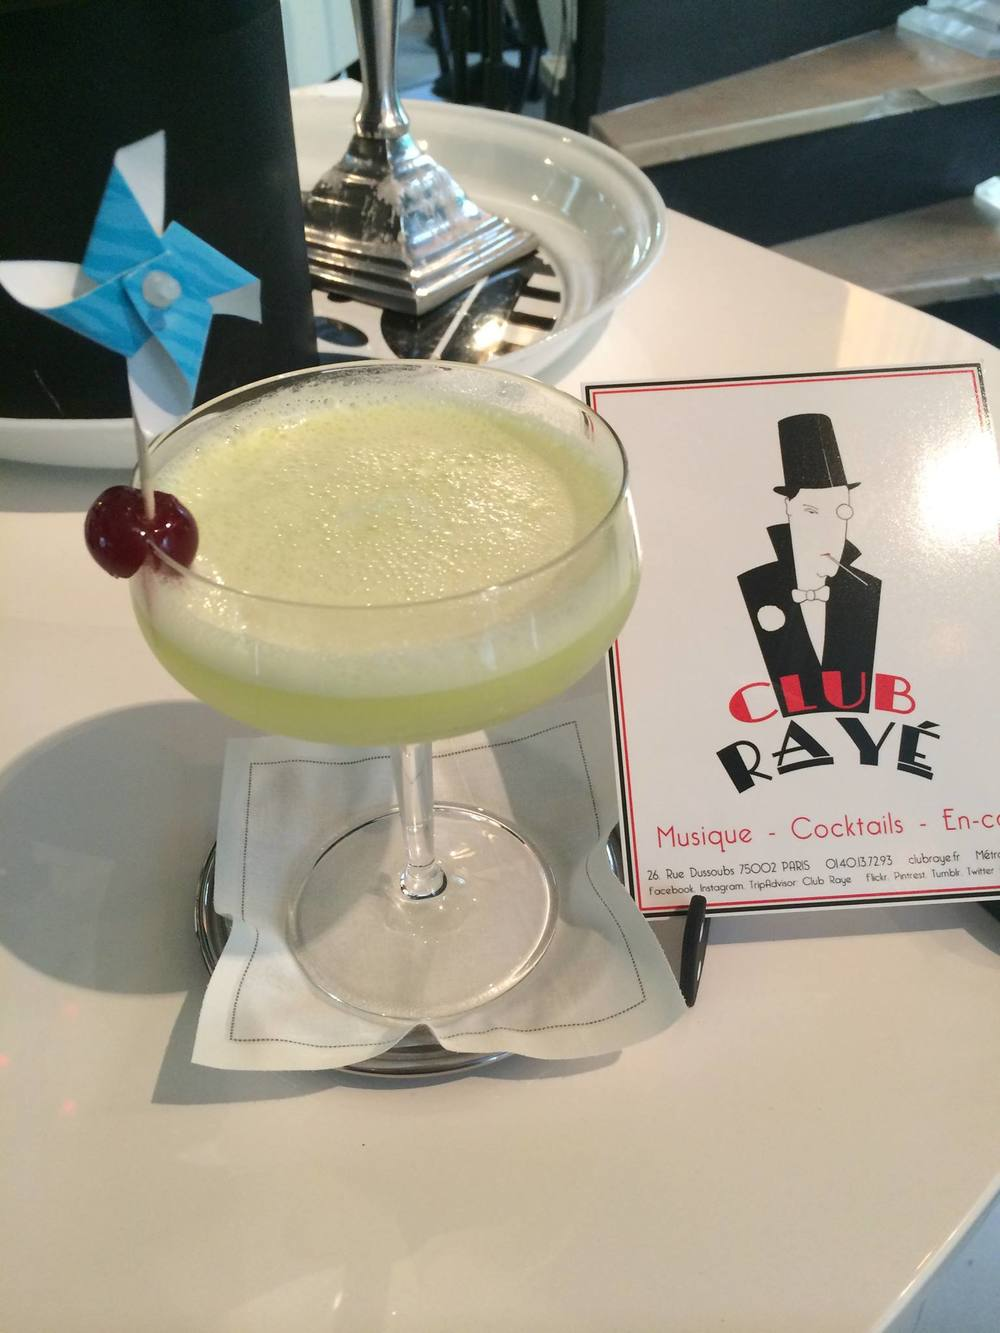 Club Rayé Barmen Marco says : Pourquoi pas ? Purple Rain, a mix of violettes syrup,rhum,pineapple juice and Bahia de Coco!